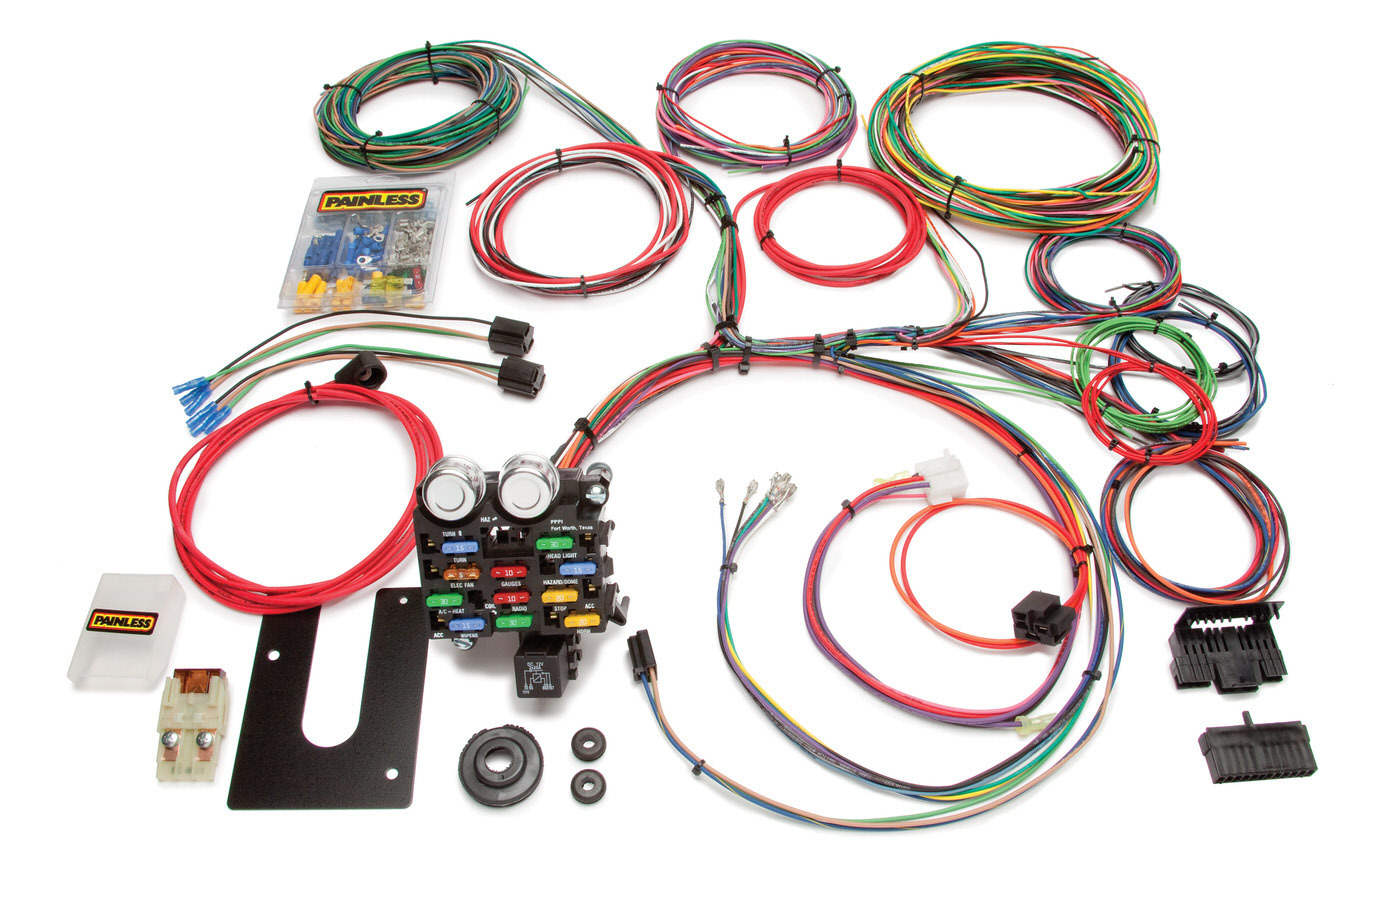 [SCHEMATICS_43NM]  Painless Wiring 10103 Car Wiring Harness, Classic Customizab | 10 Painless Wiring Harness |  | Dan Hellmer Racing Solutions